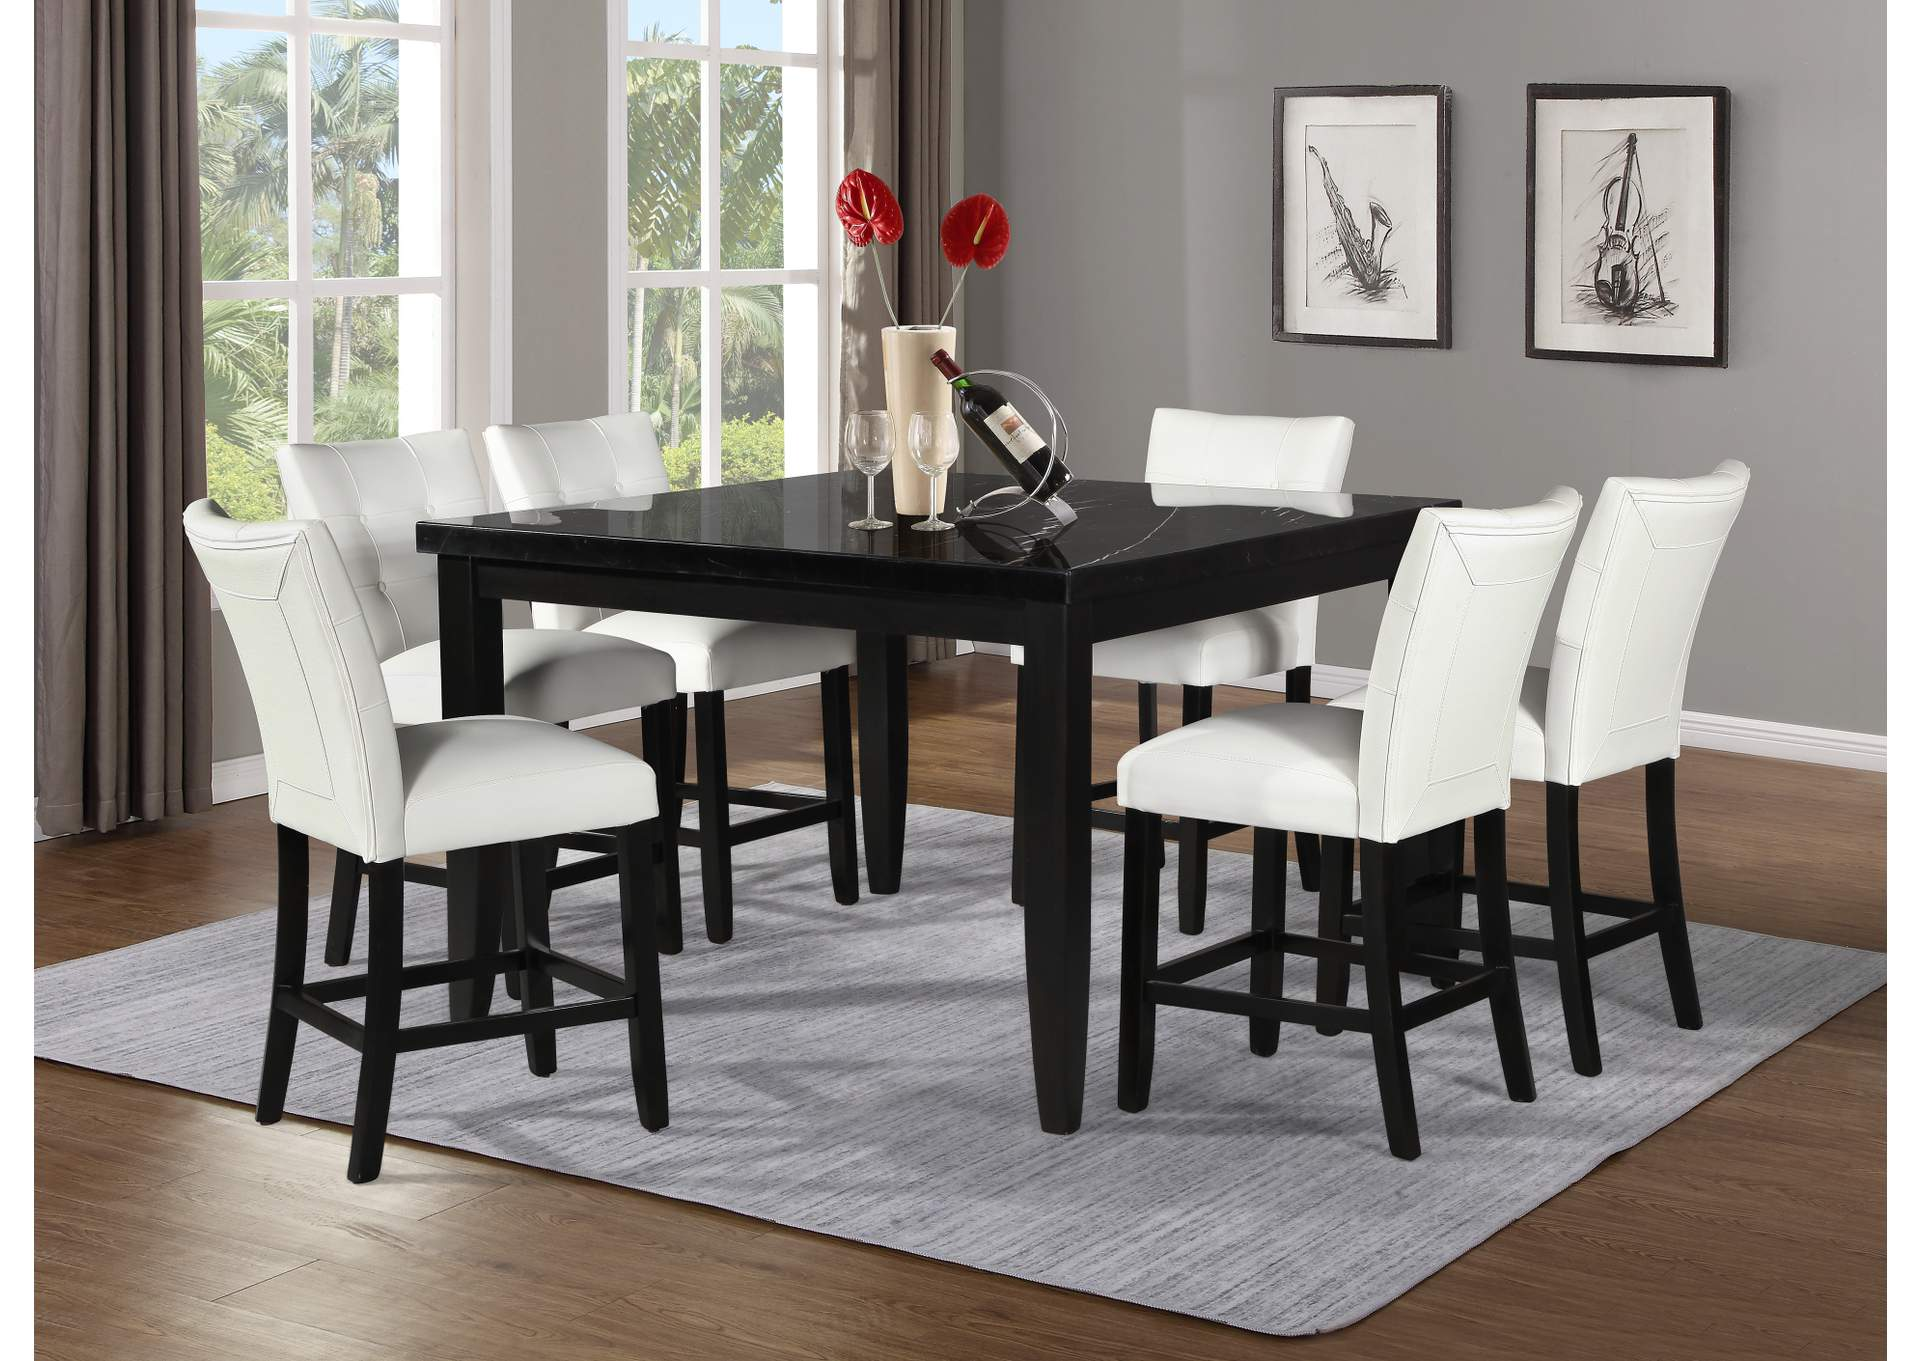 Markina Black Square Marble Top Counter Dining Set W 6 Chairs White Ivan Smith